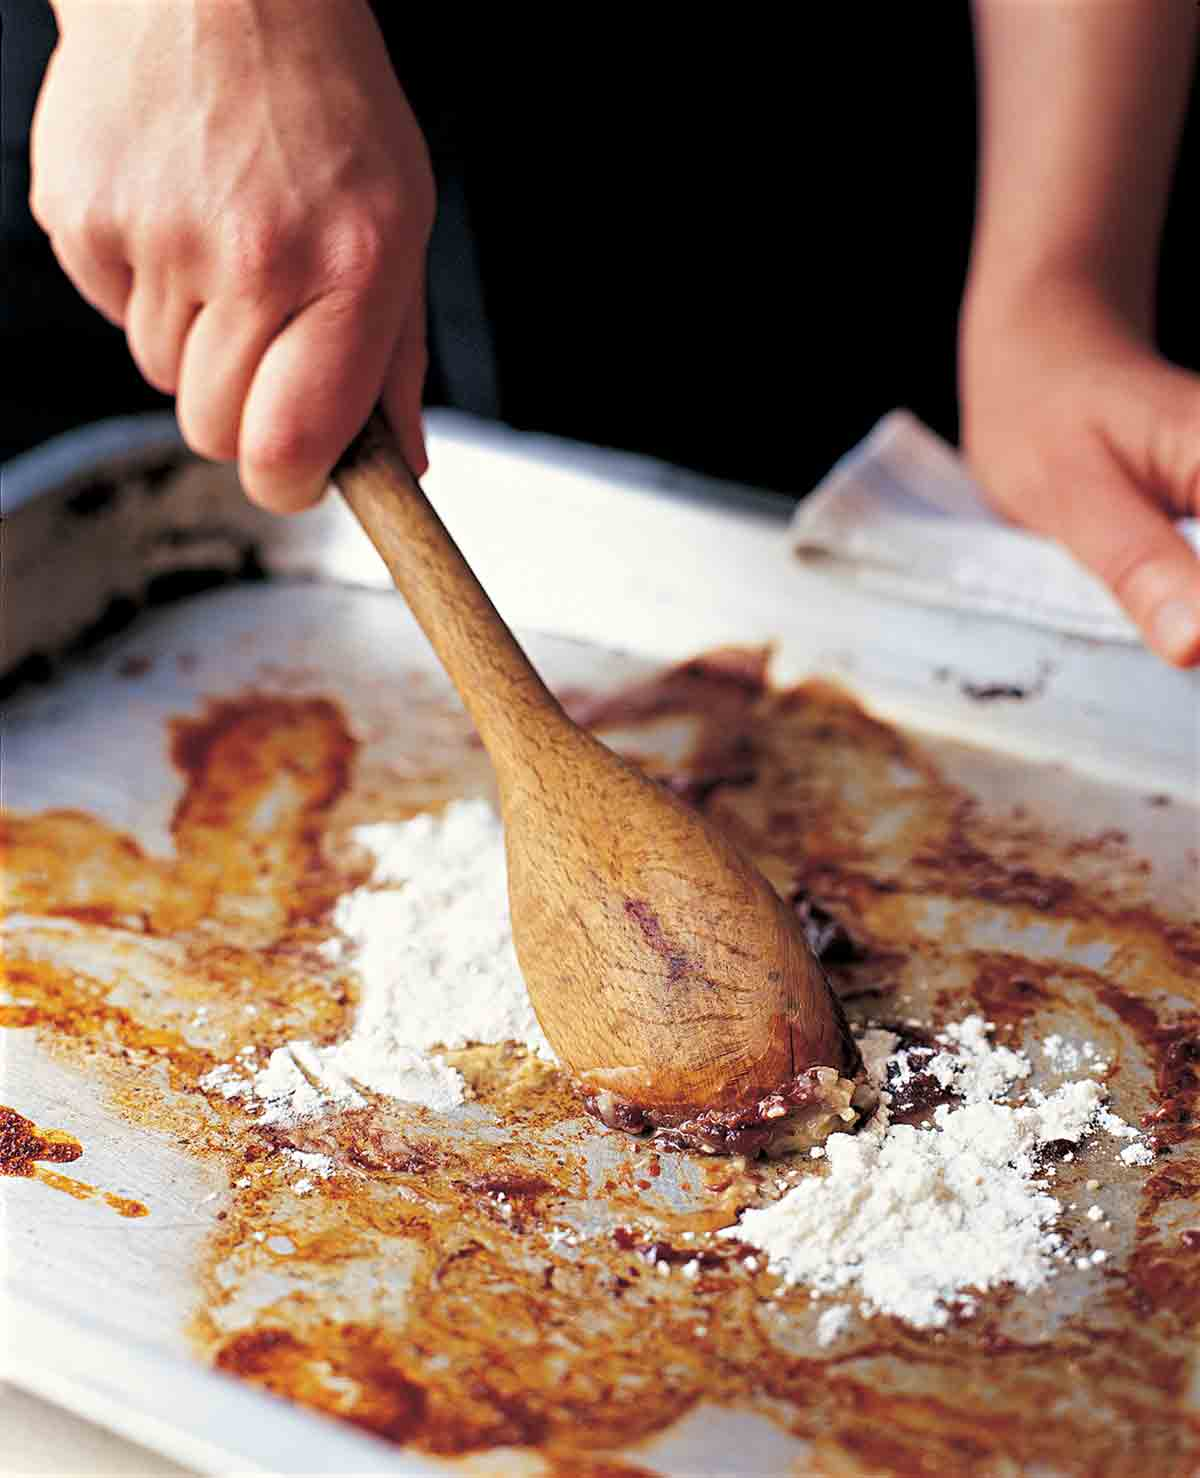 A person stirring flour into the basic pan gravy with a wooden spoon on a rimmed baking sheet.